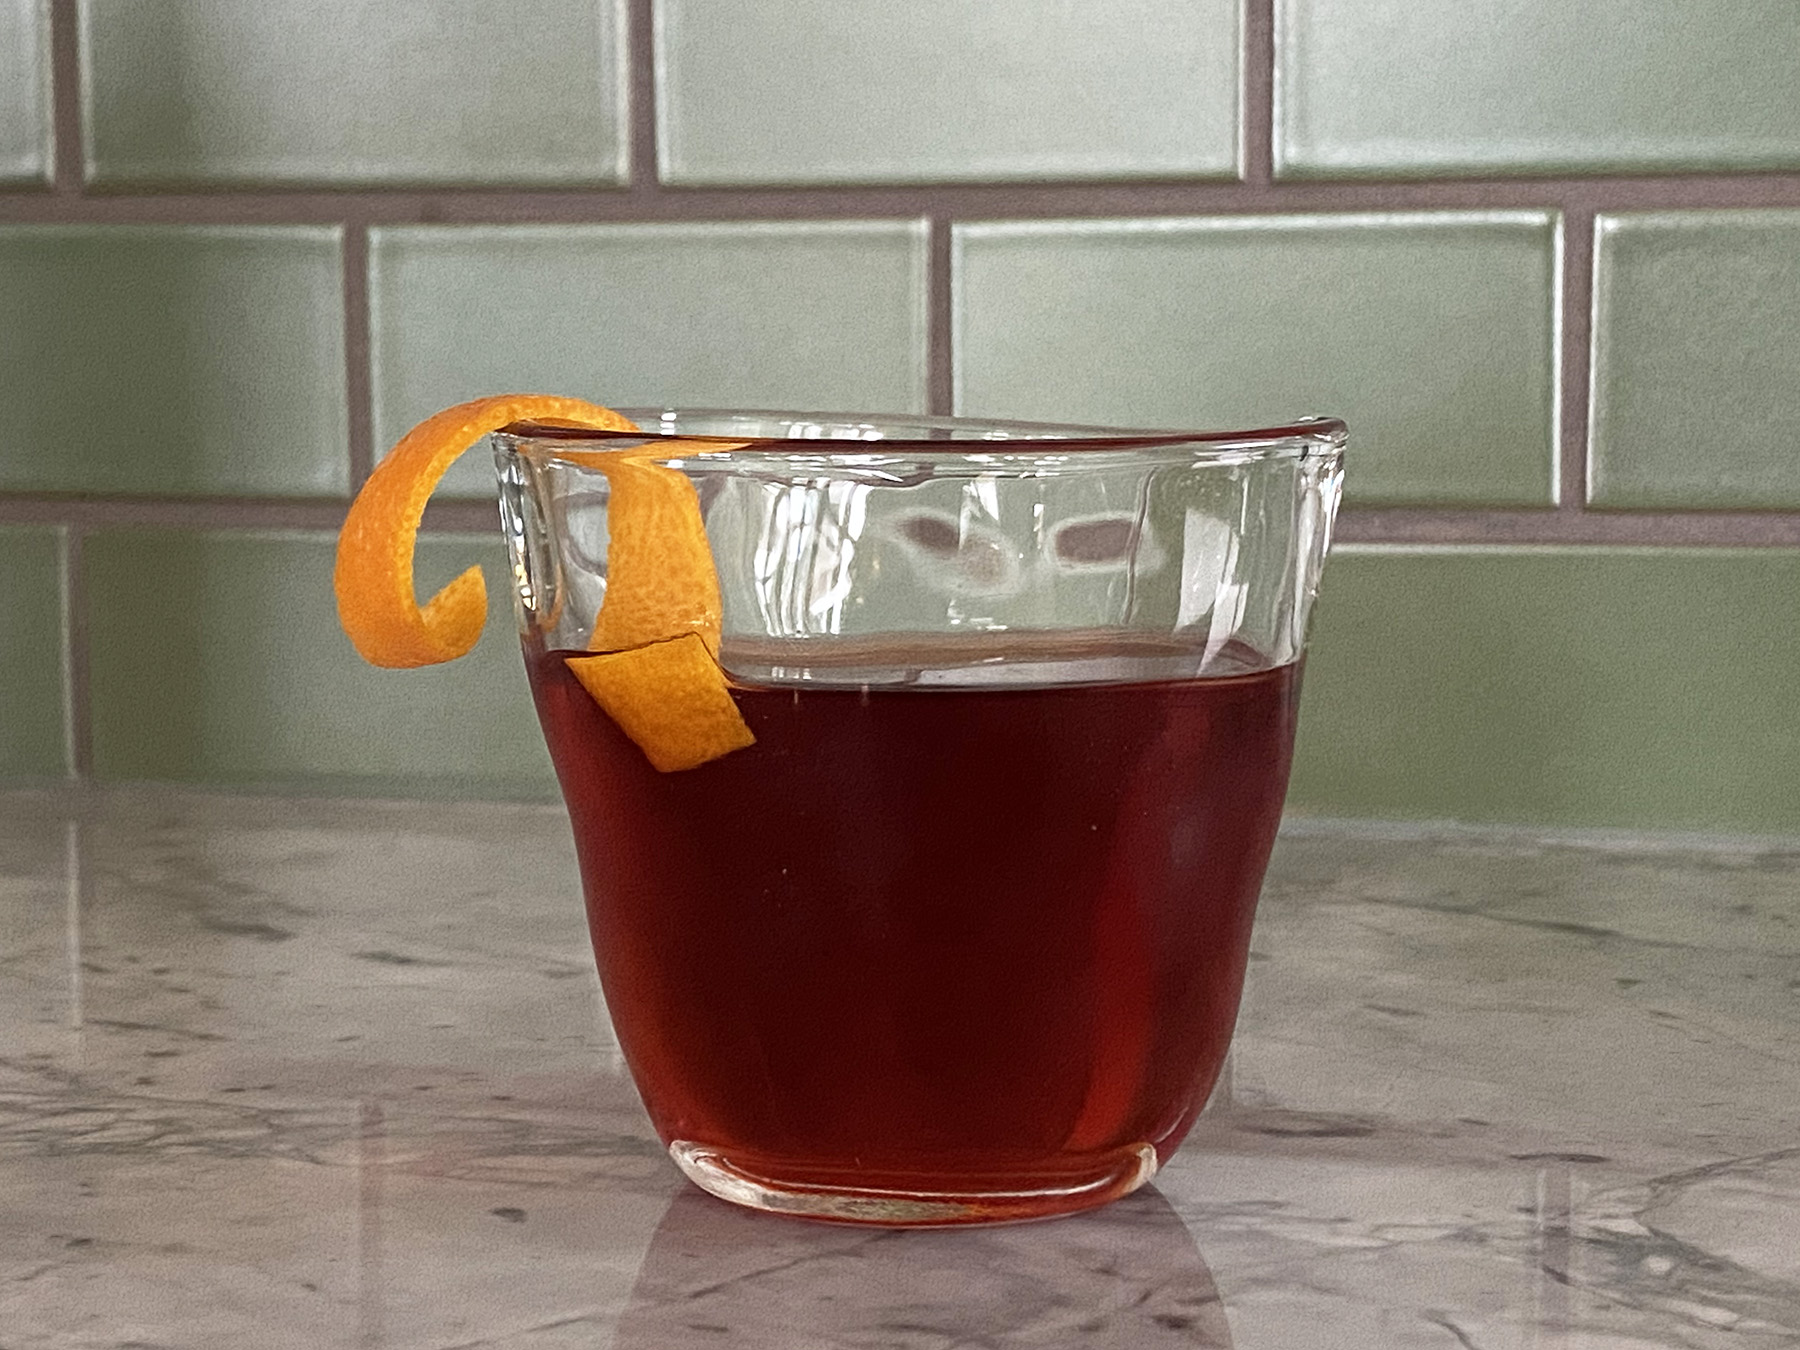 Negroni (with variations)